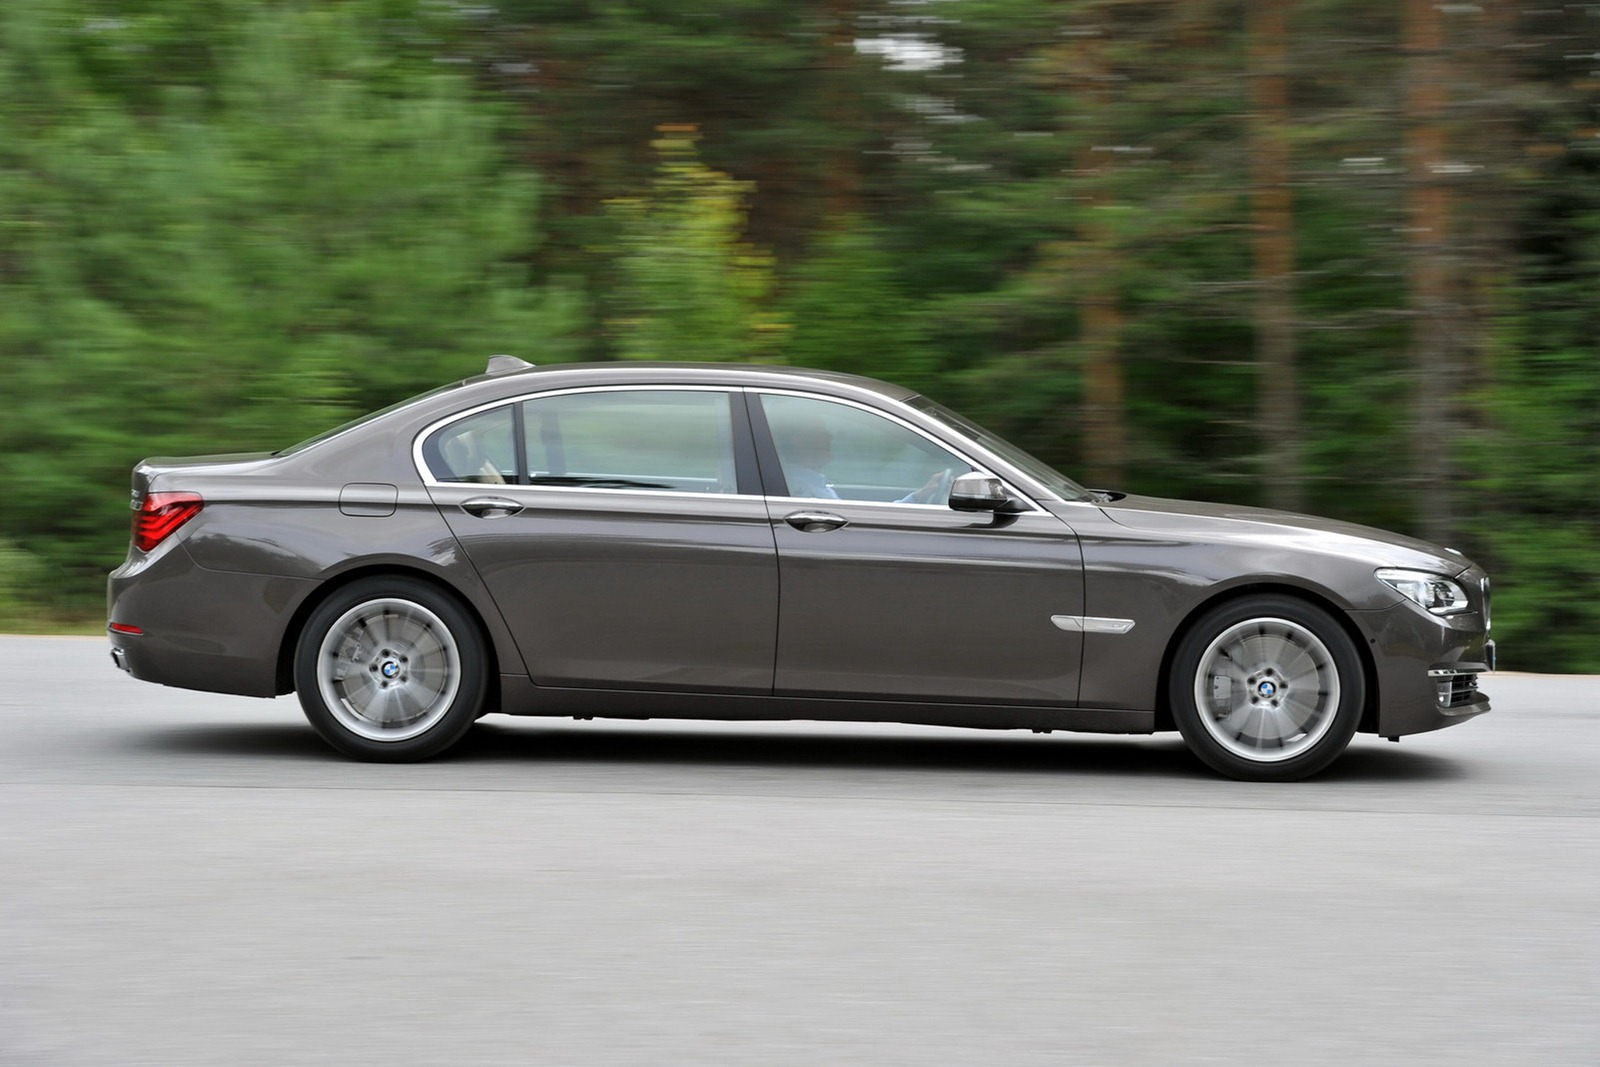 Town Country Bmw Mini Markham Blog 2013 Bmw 7 Series Lci Gallery Part 2